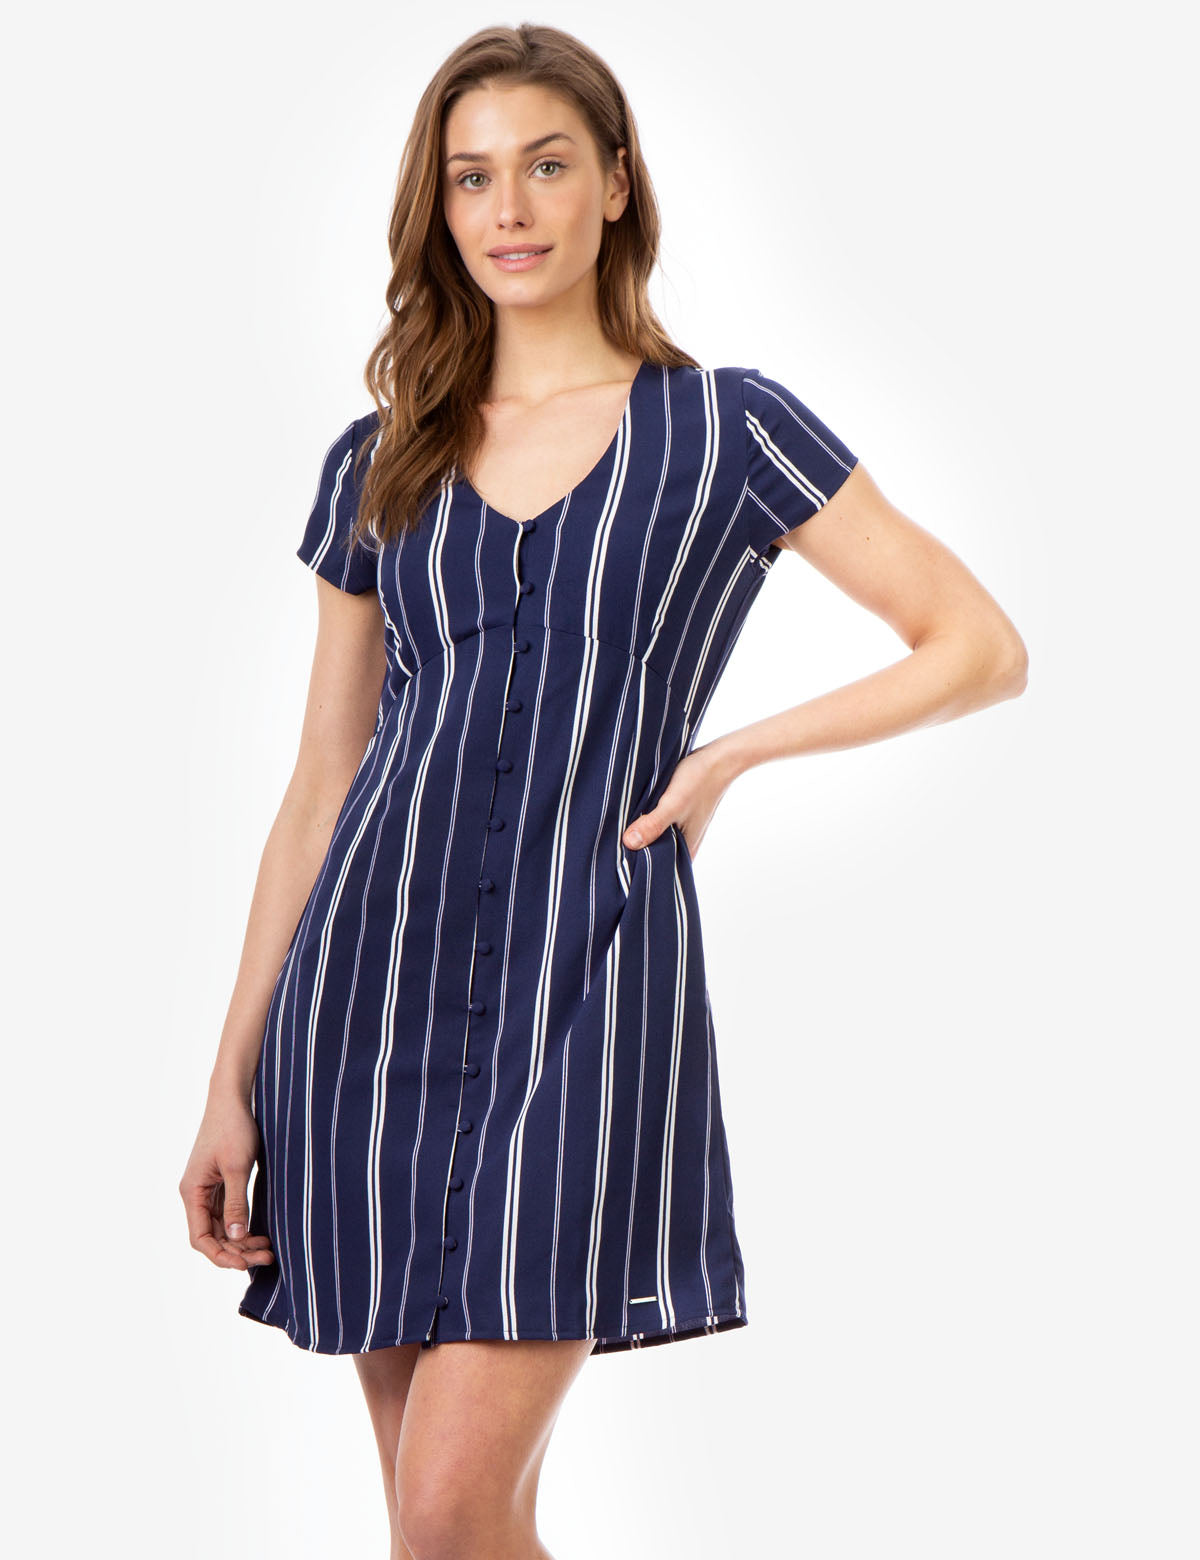 STRIPE BUTTON UP DRESS - U.S. Polo Assn.